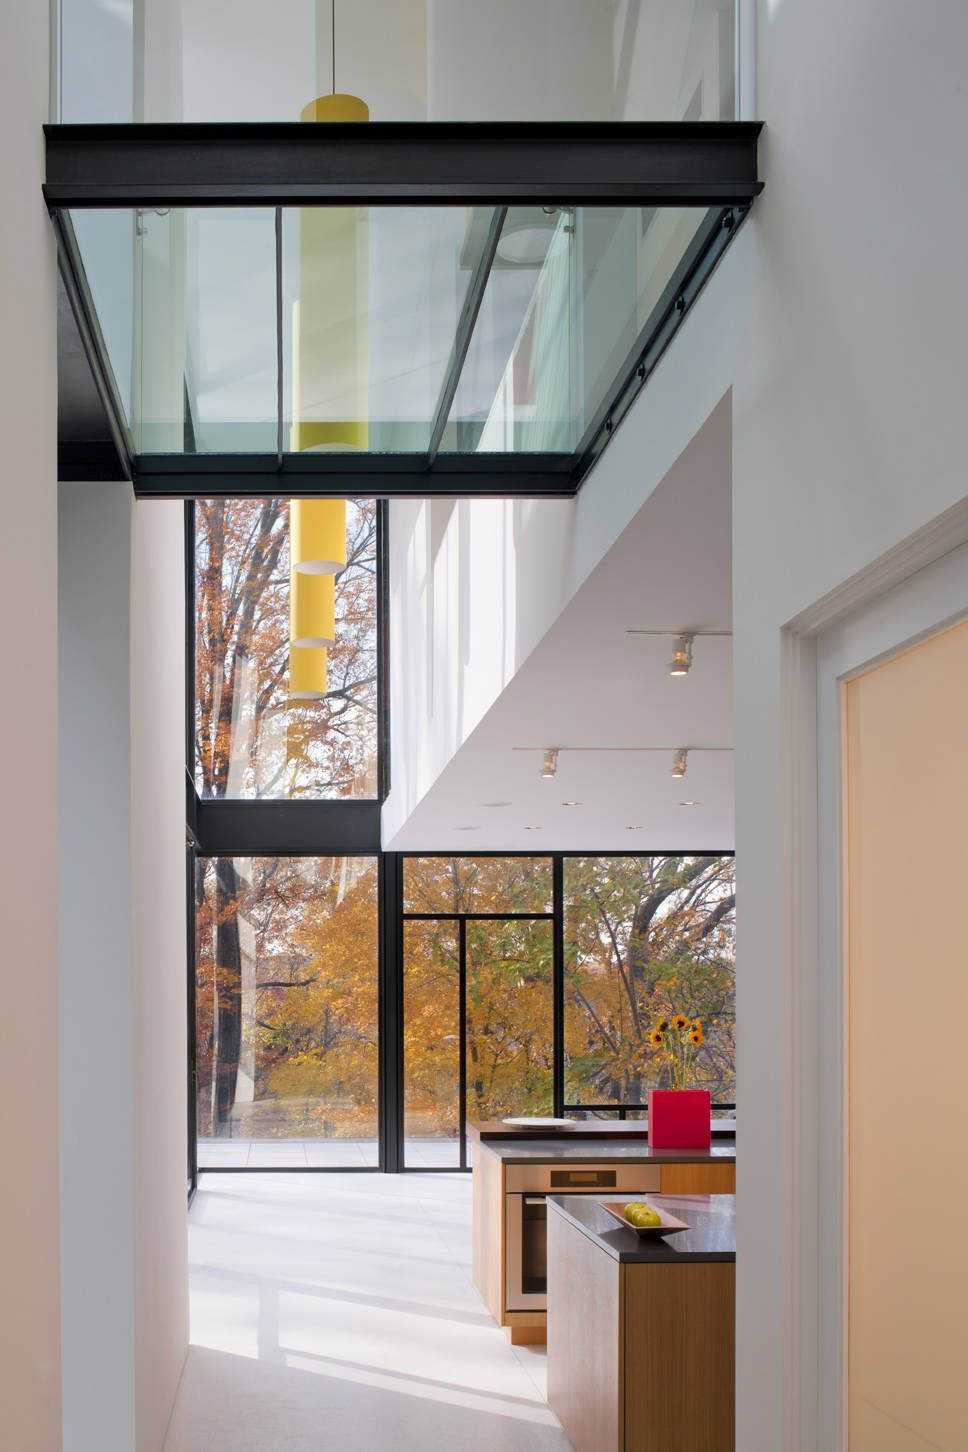 Wissoming 2 / Robert Guerney / Bethesda, Maryland | architecture ...